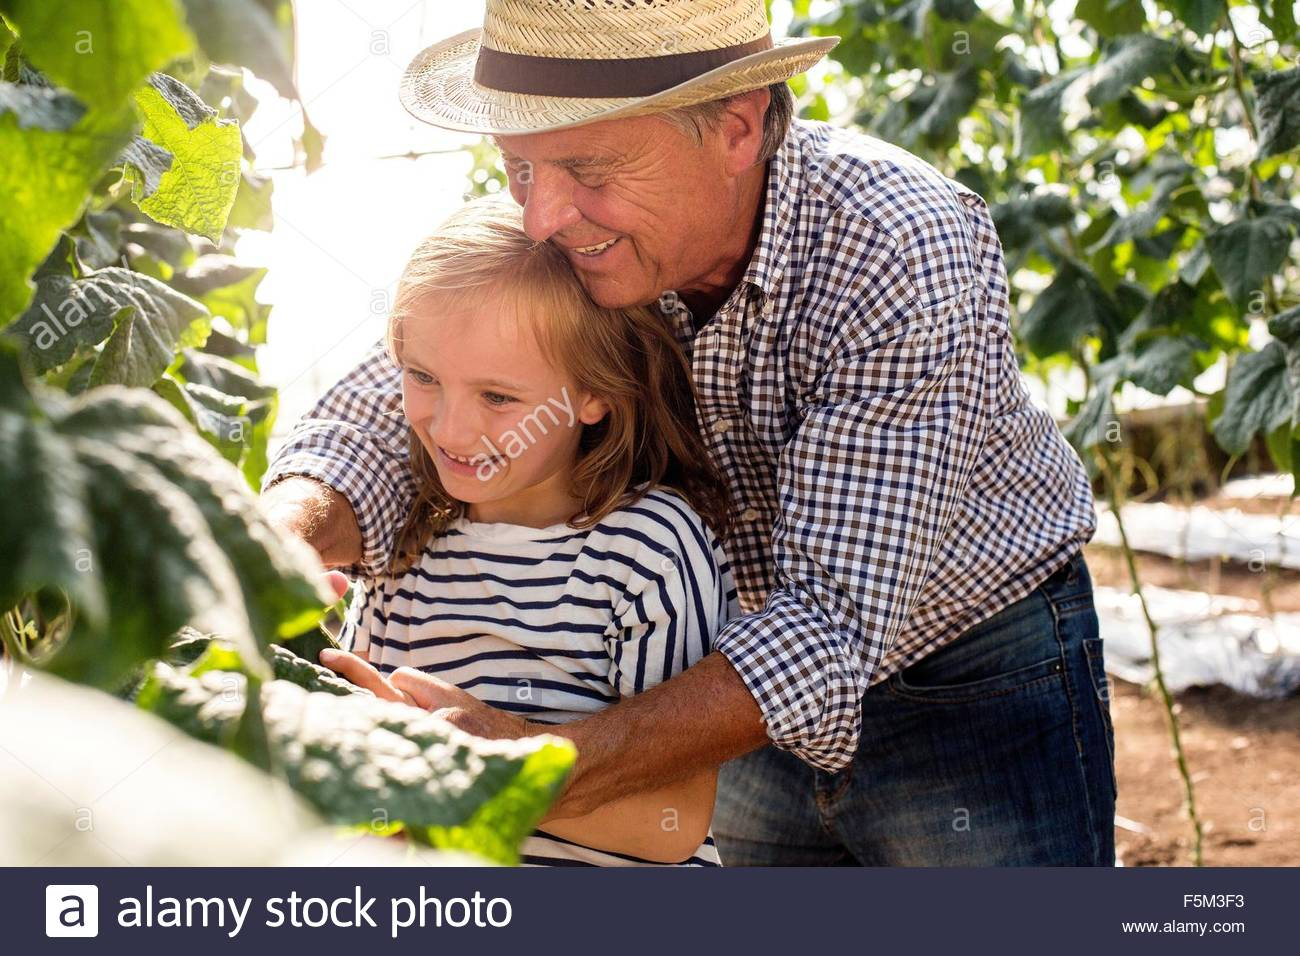 Grandfather standing behind granddaughter tending to plants - Stock Image